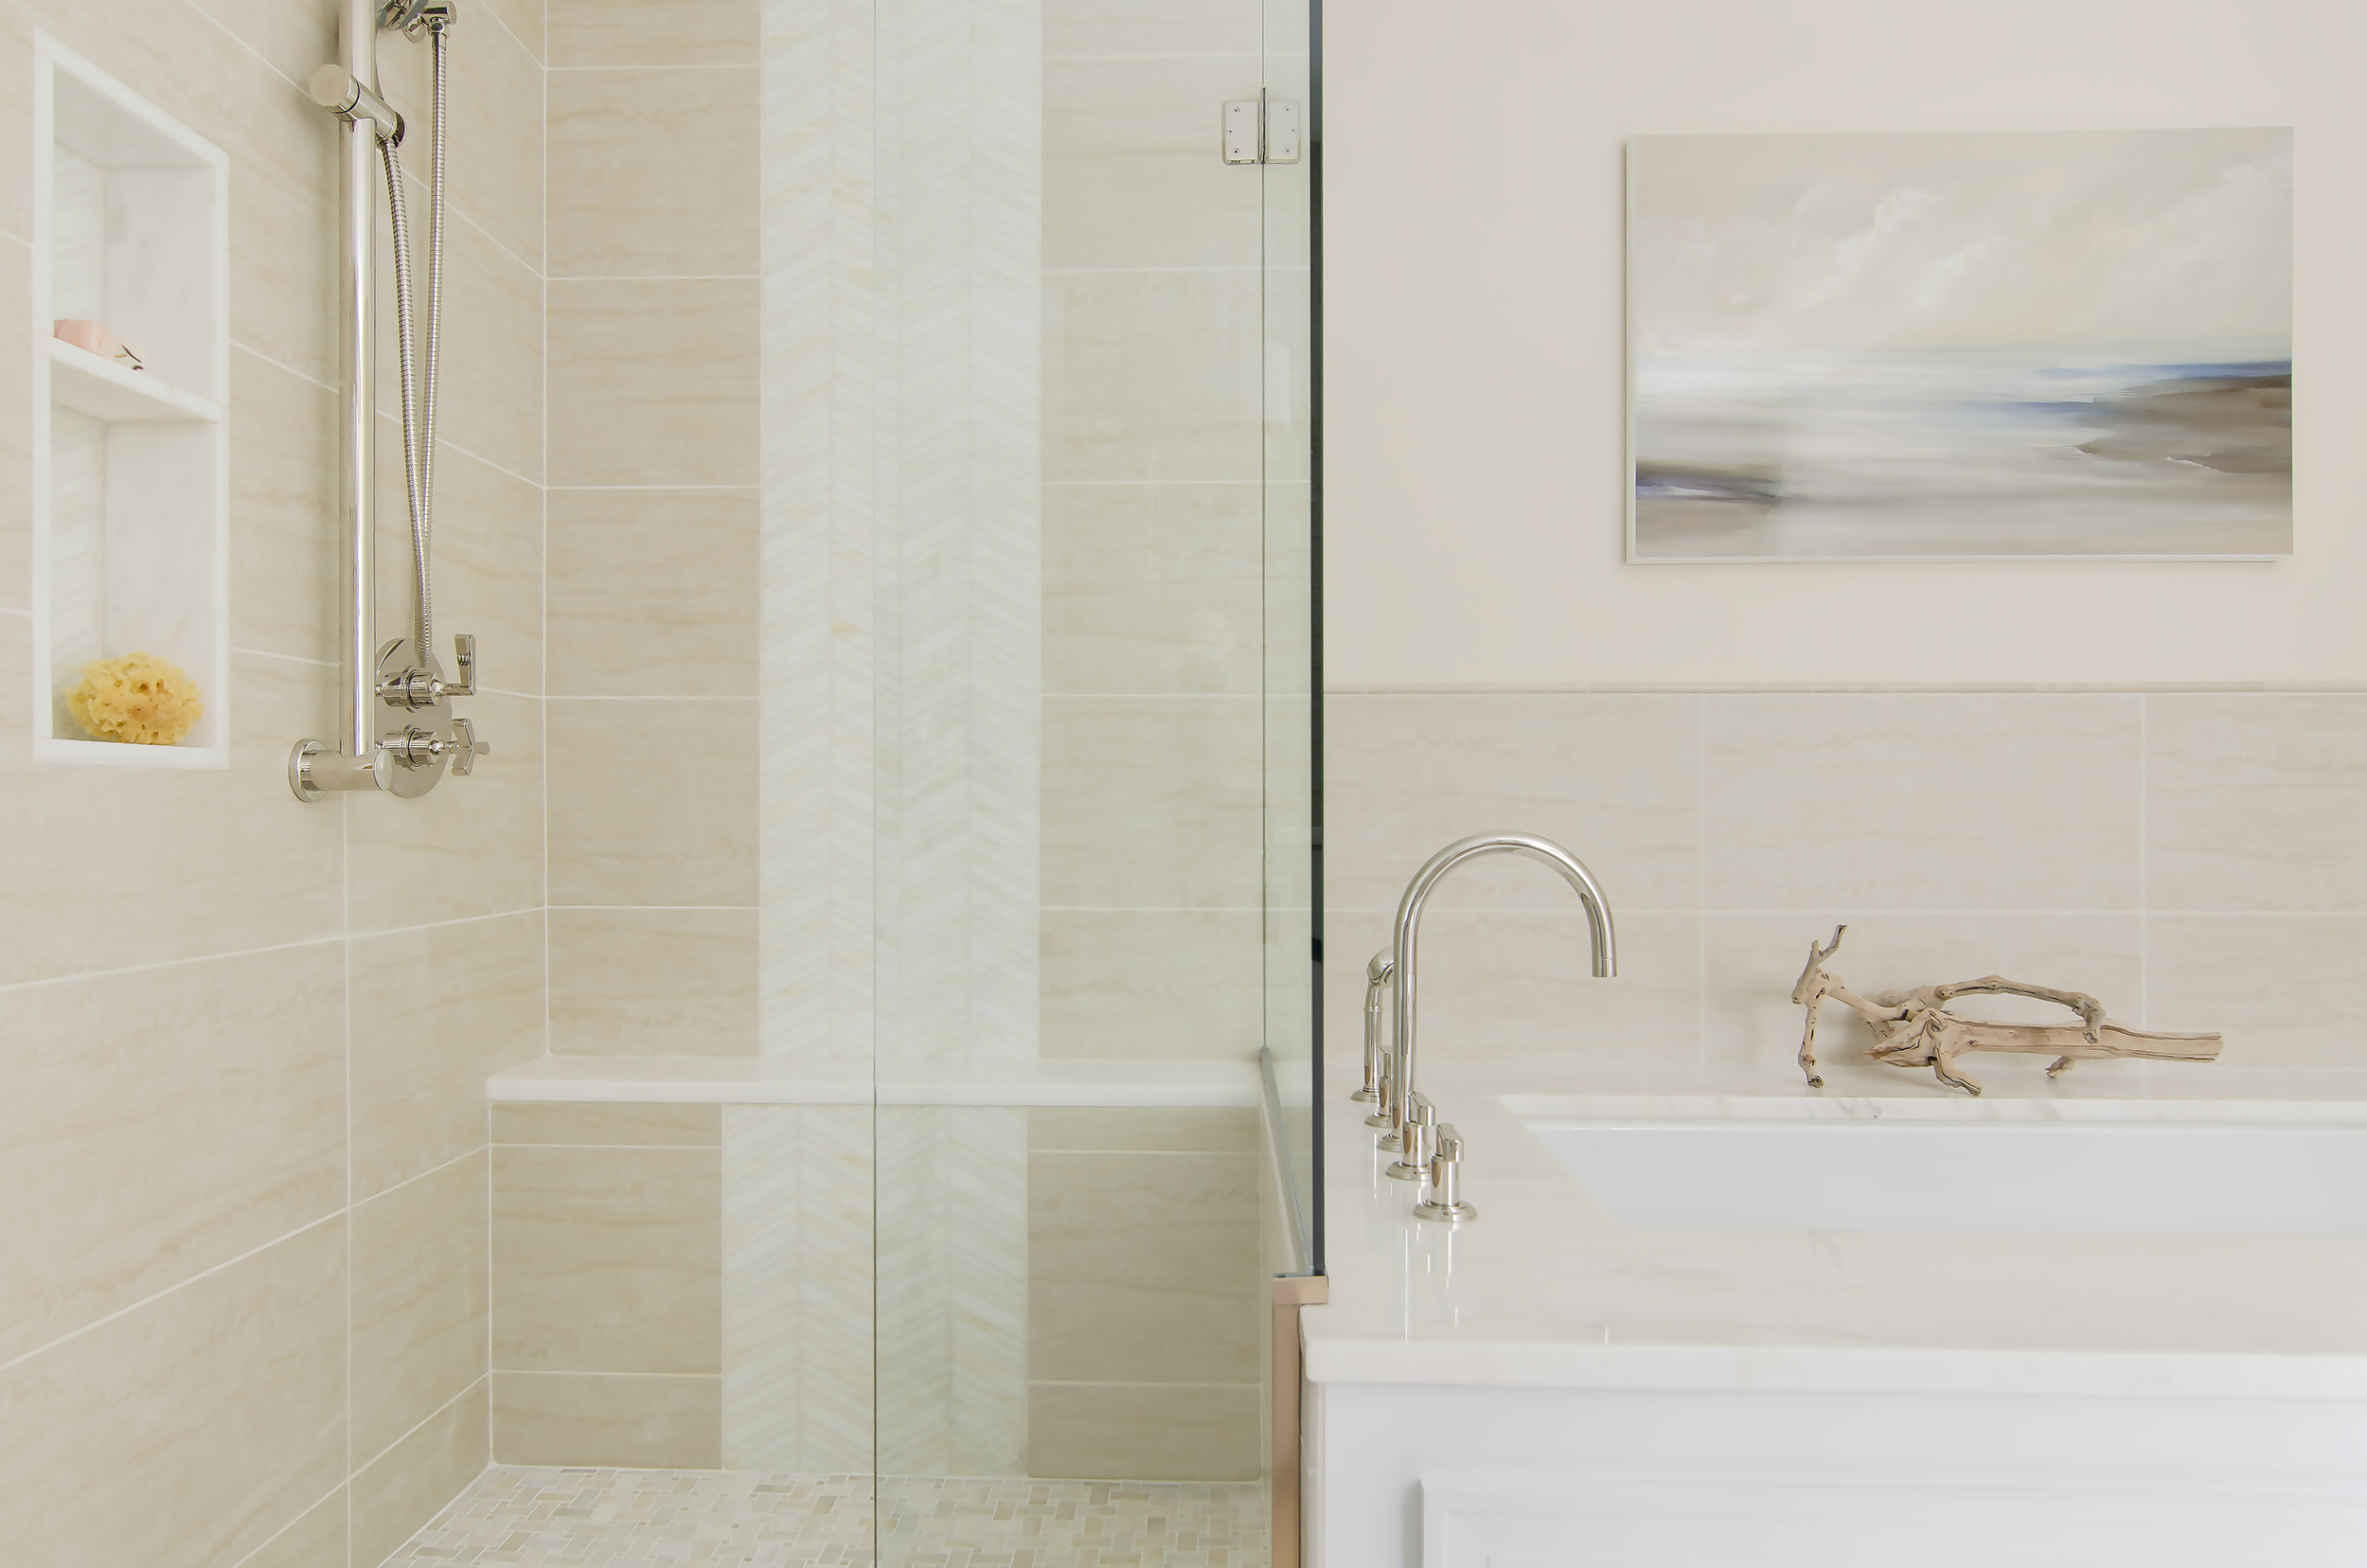 Norwell, Ma bathroom revitalization by Susan Curtis Interiors